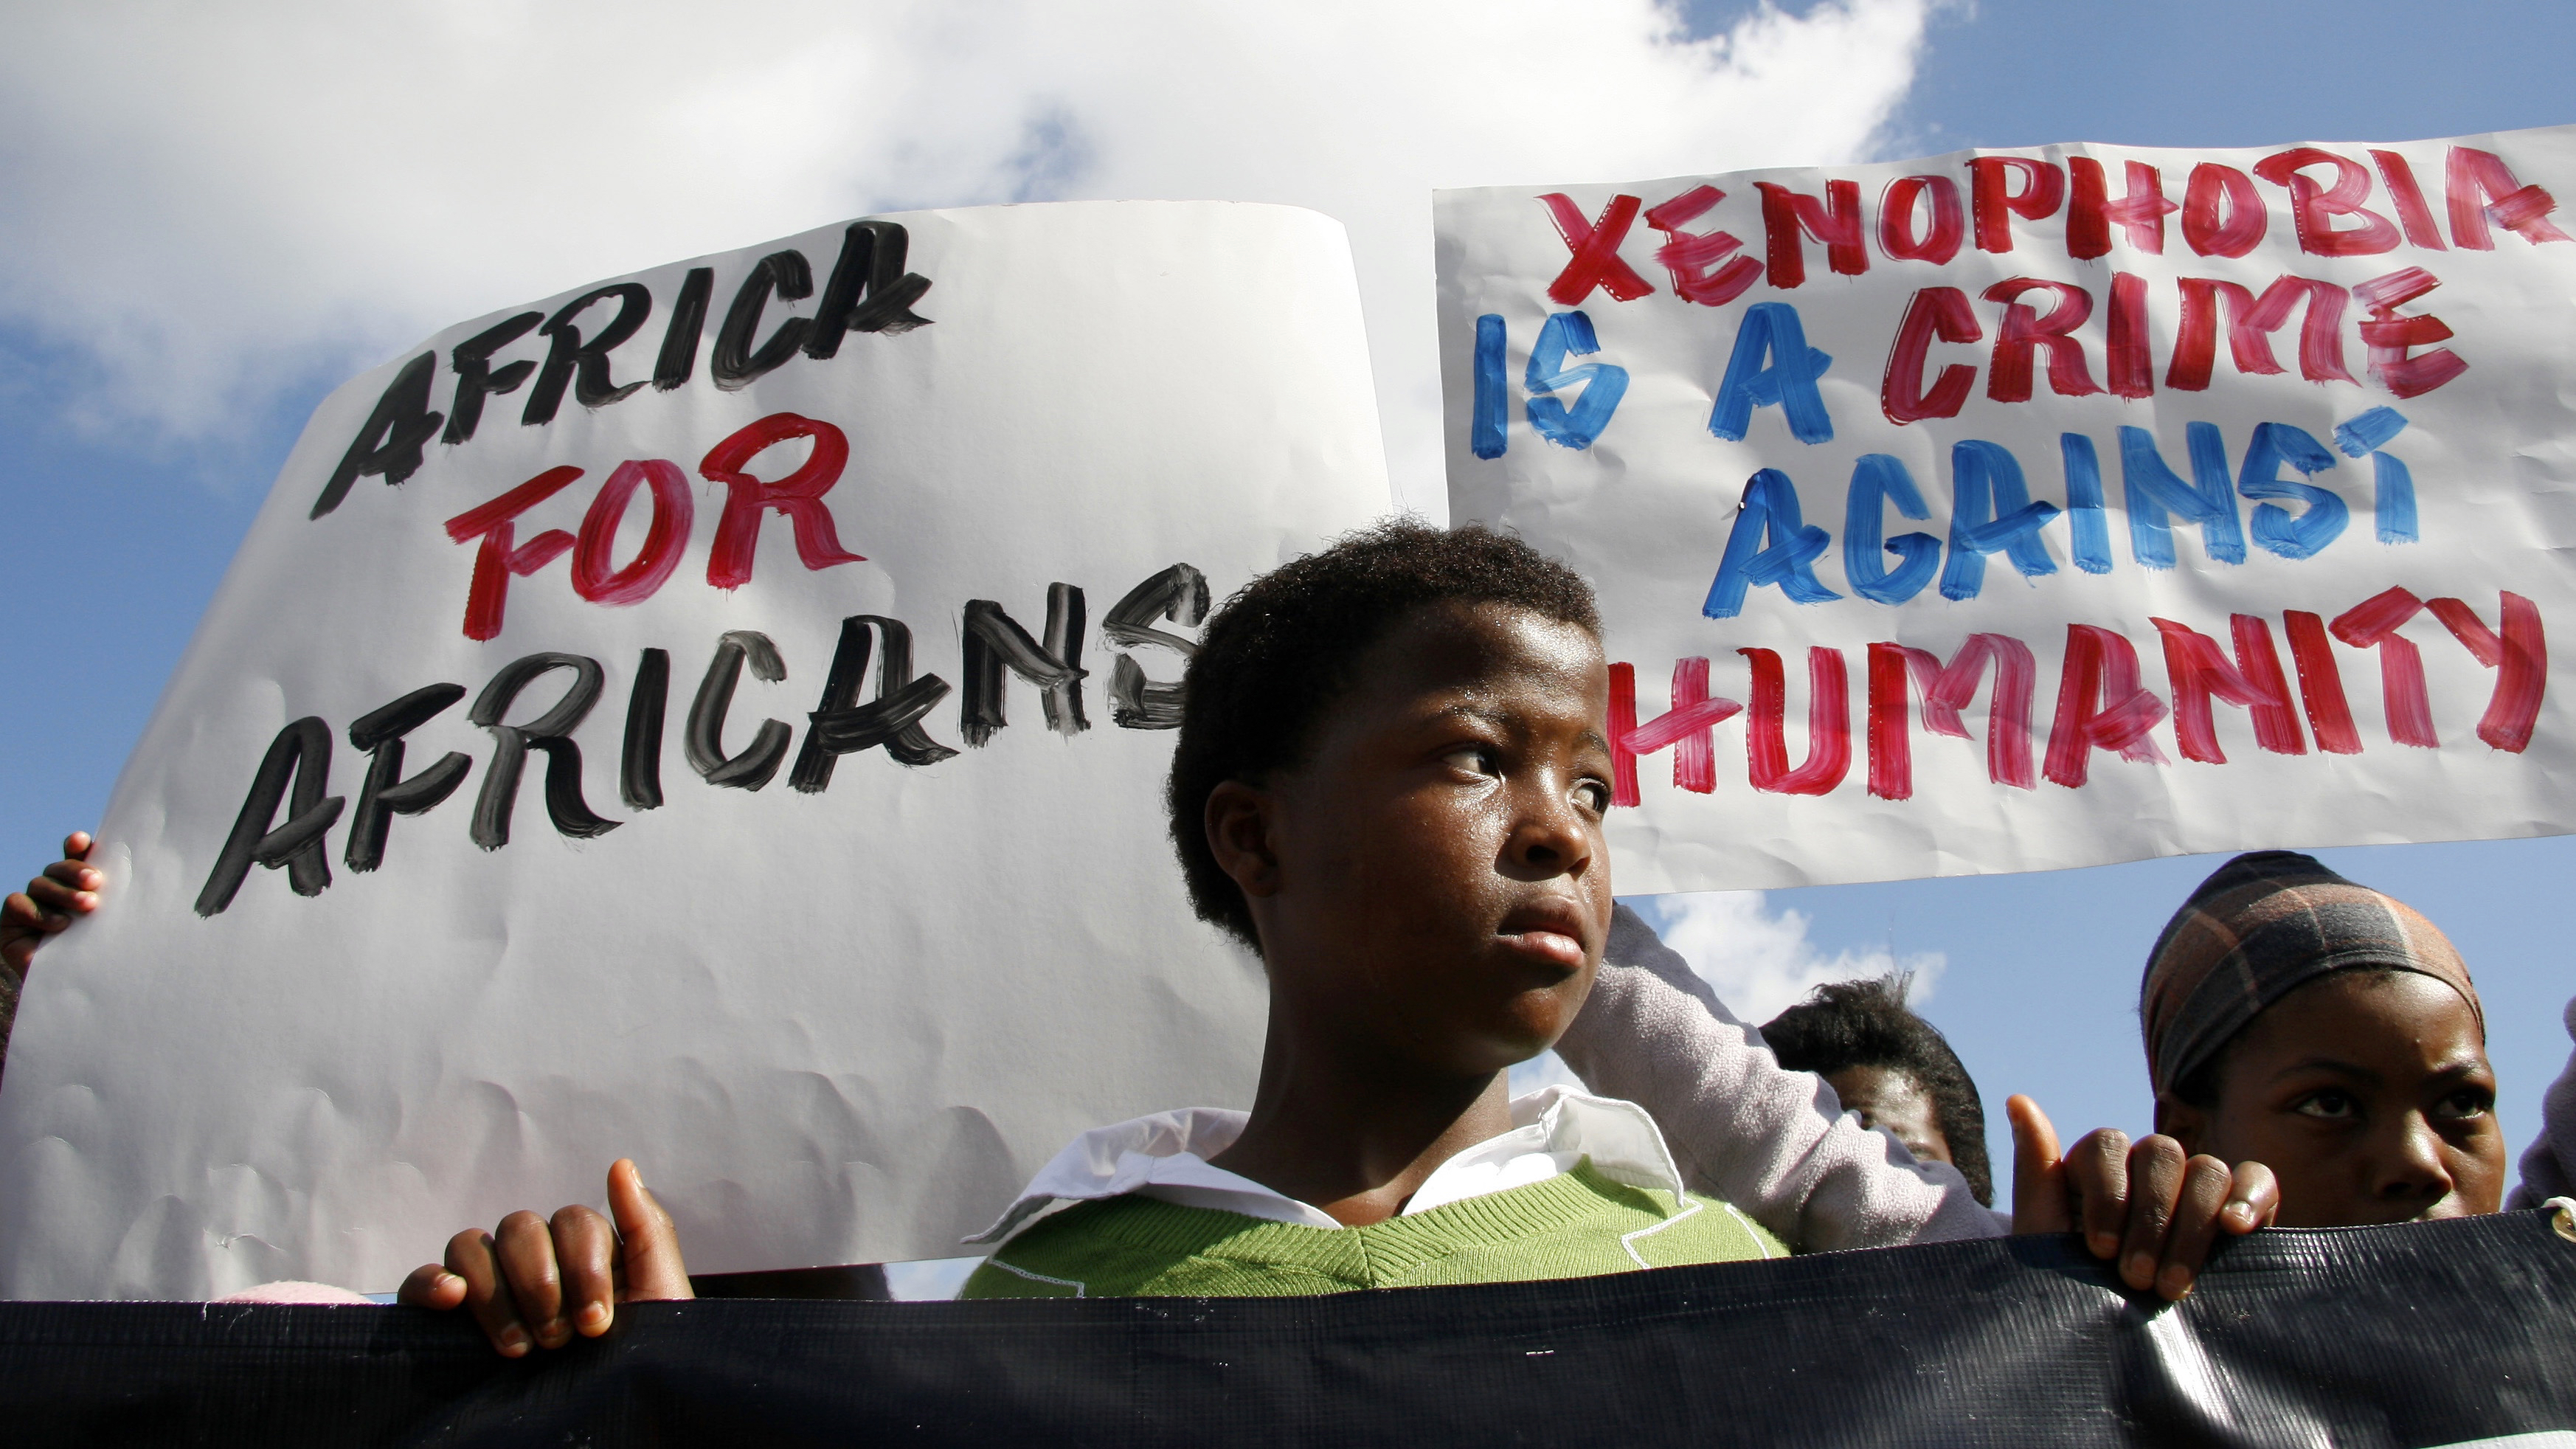 Demostrators march against the recent wave of xenophobic attacks, in Khayelitsha township near Cape Town, May 31, 2008. A wave of attacks on foreigners in South Africa has killed 62 people since the violence broke out three weeks ago, police said on Saturday. REUTERS/Mark Wessels (SOUTH AFRICA) - RTX6D95